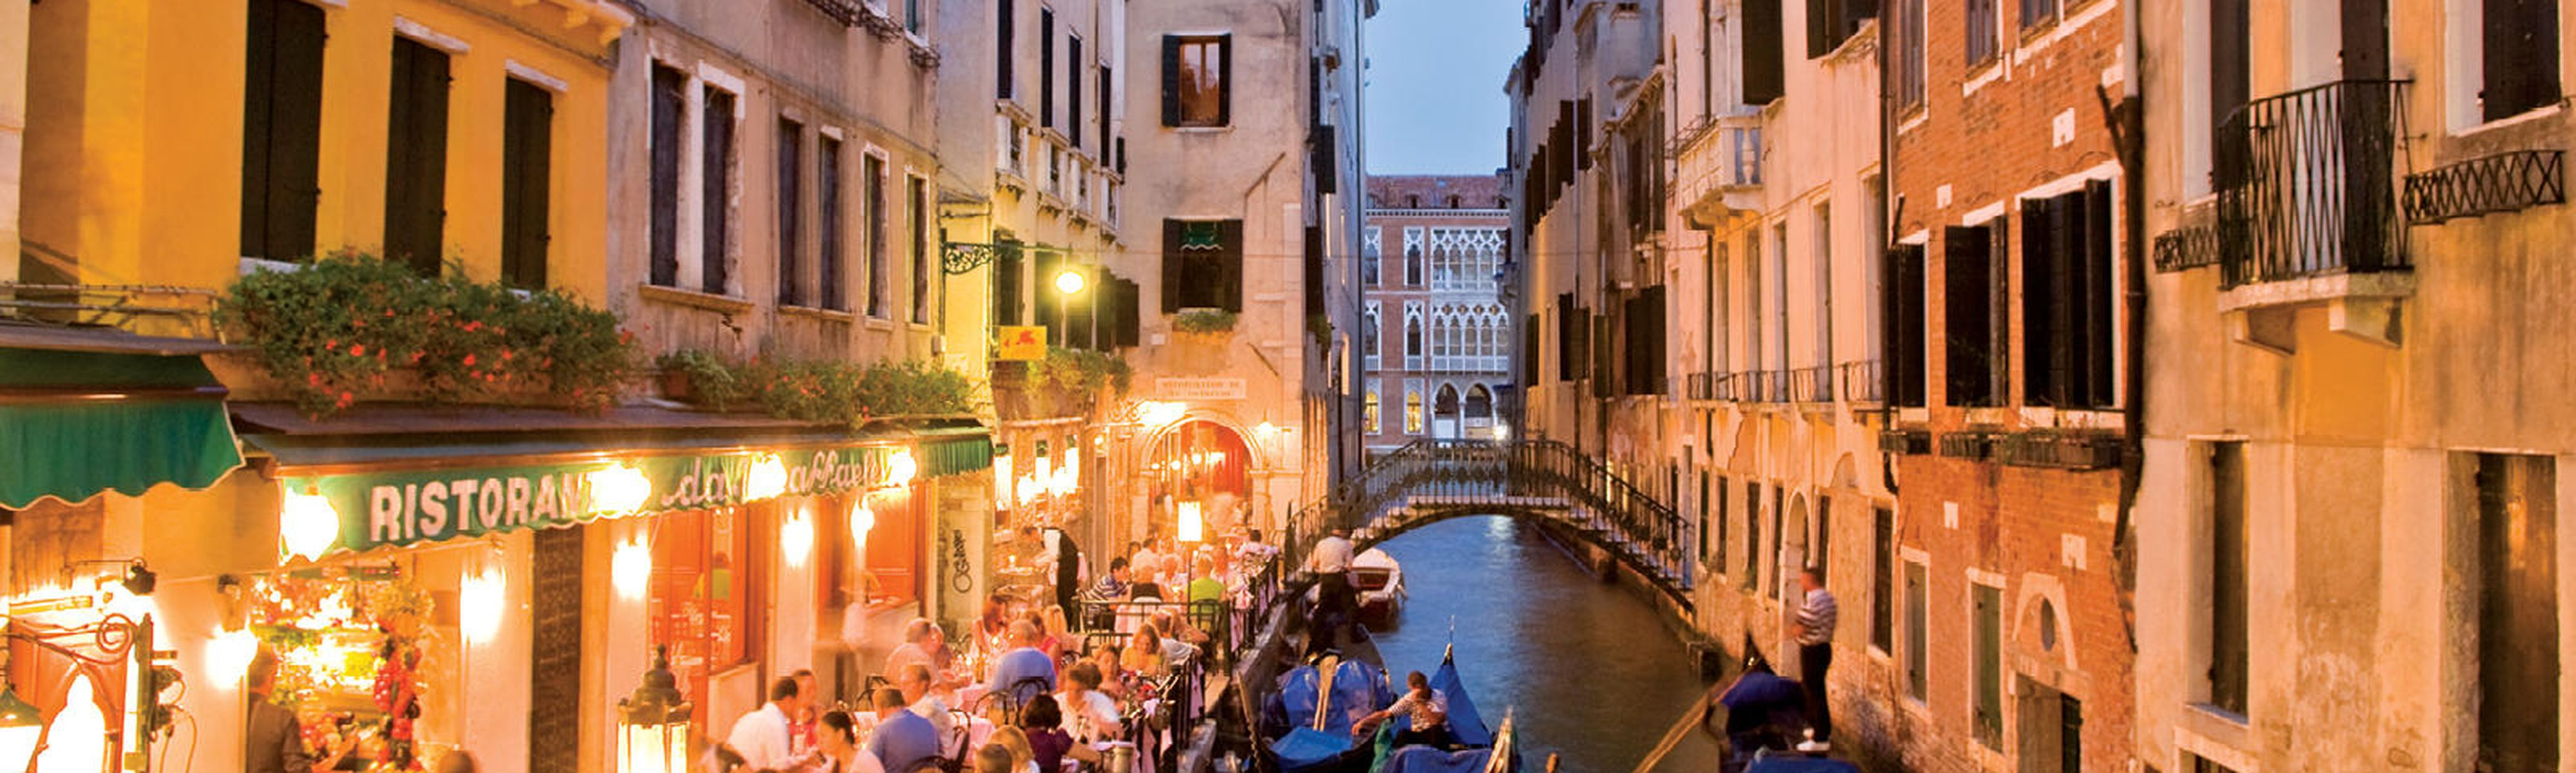 people sitting along a canal at an outdoor cafe in venice at night time